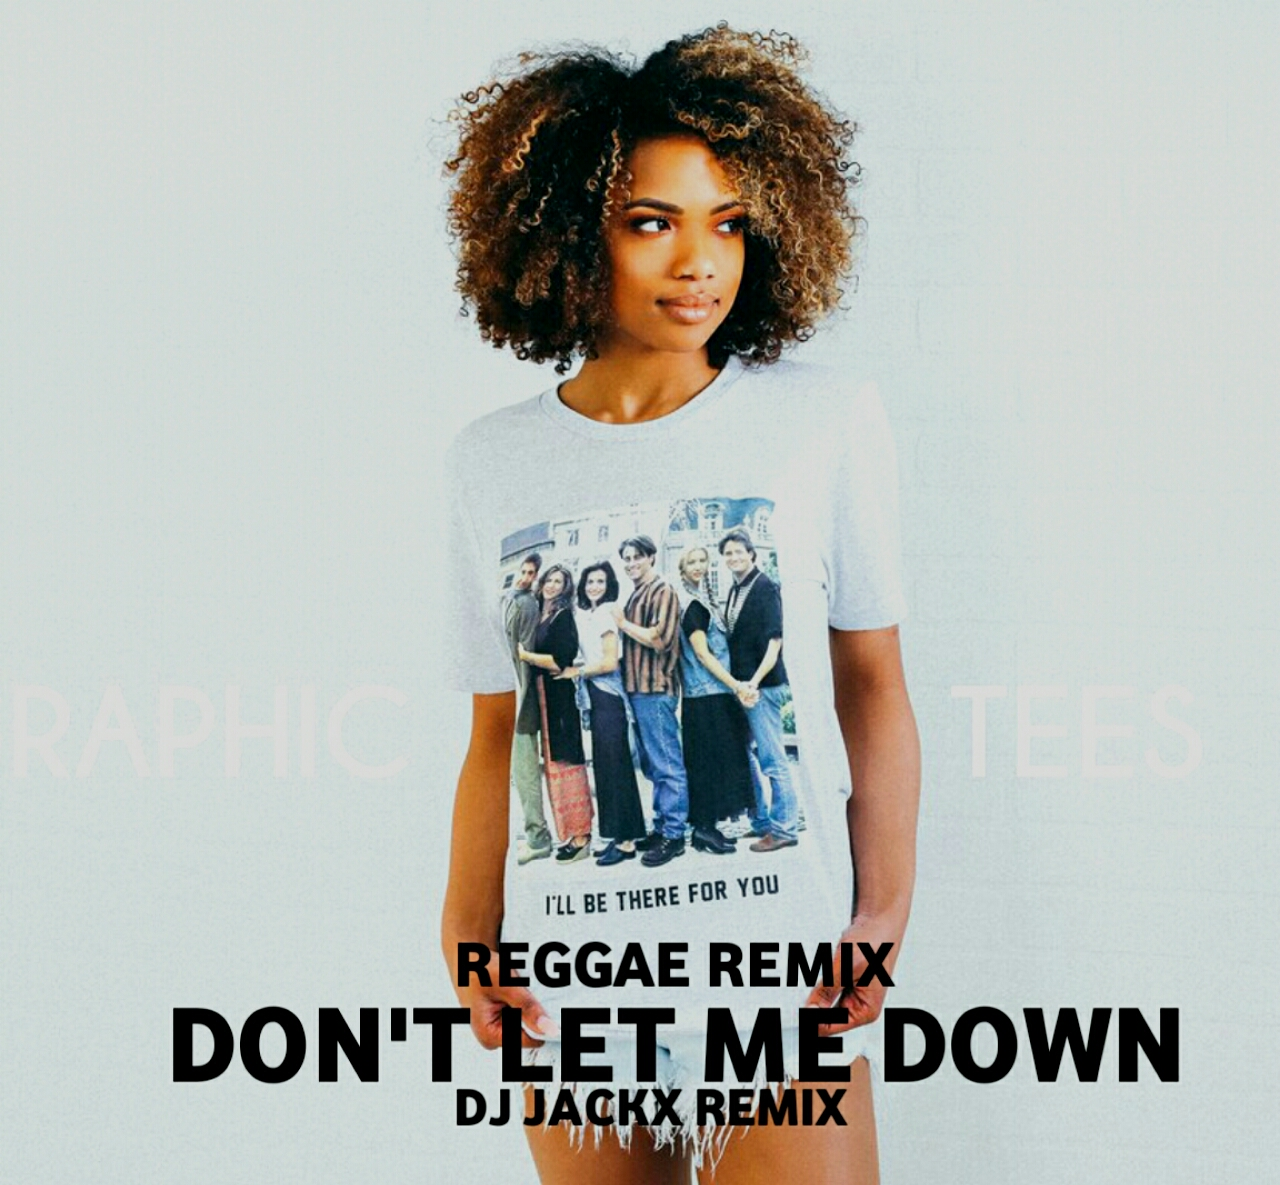 TUFF VIBES OFFICIAL: Don't let me down-(Reggae Remix)-DJ